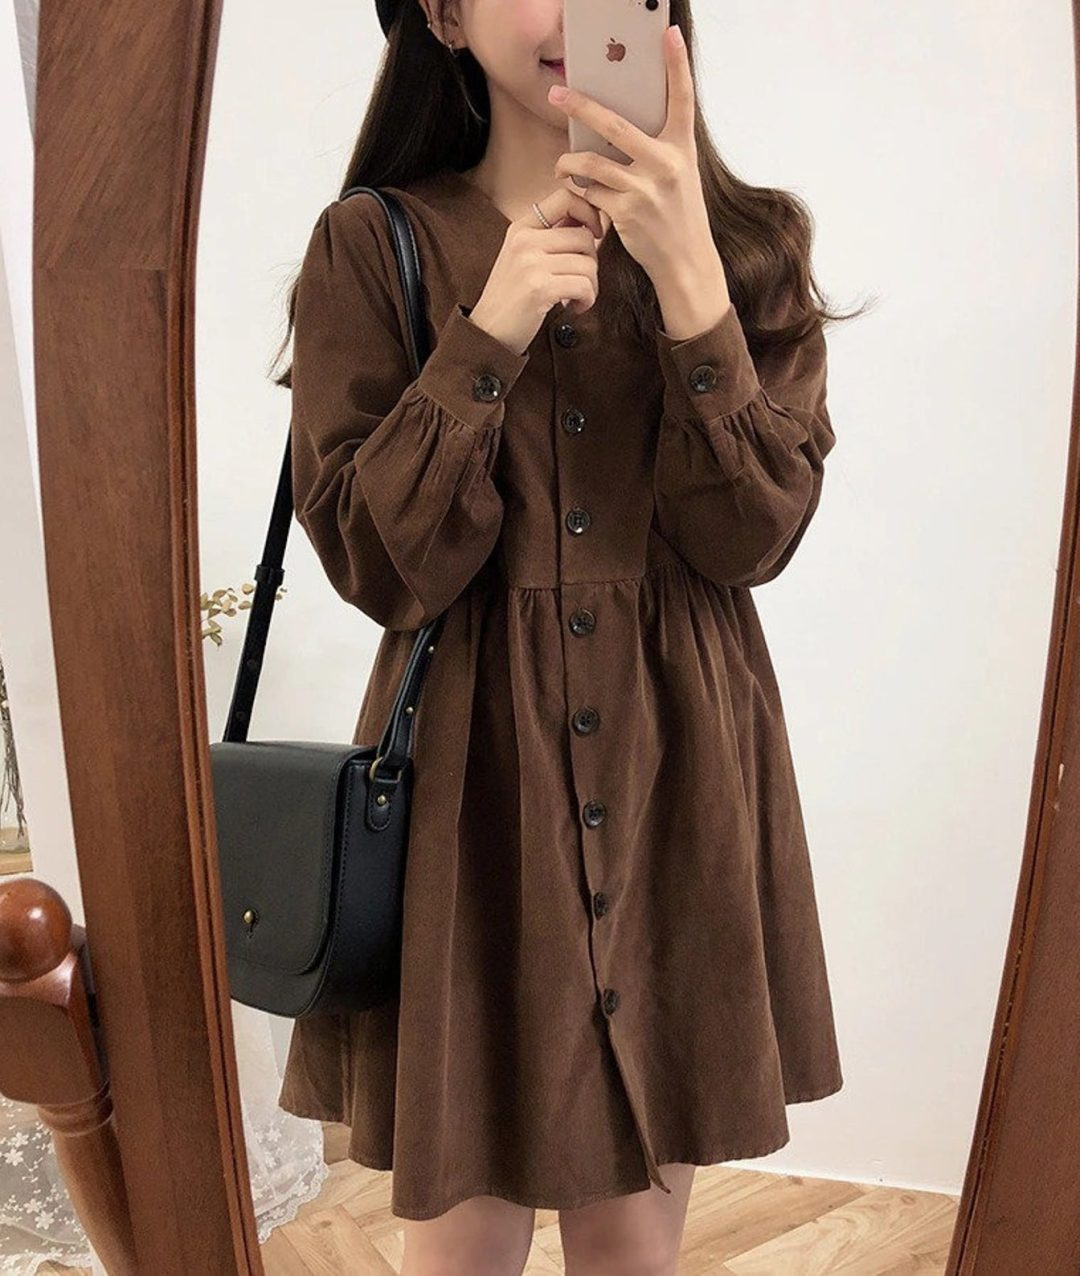 Brown long sleeve dress in dark academia outfit